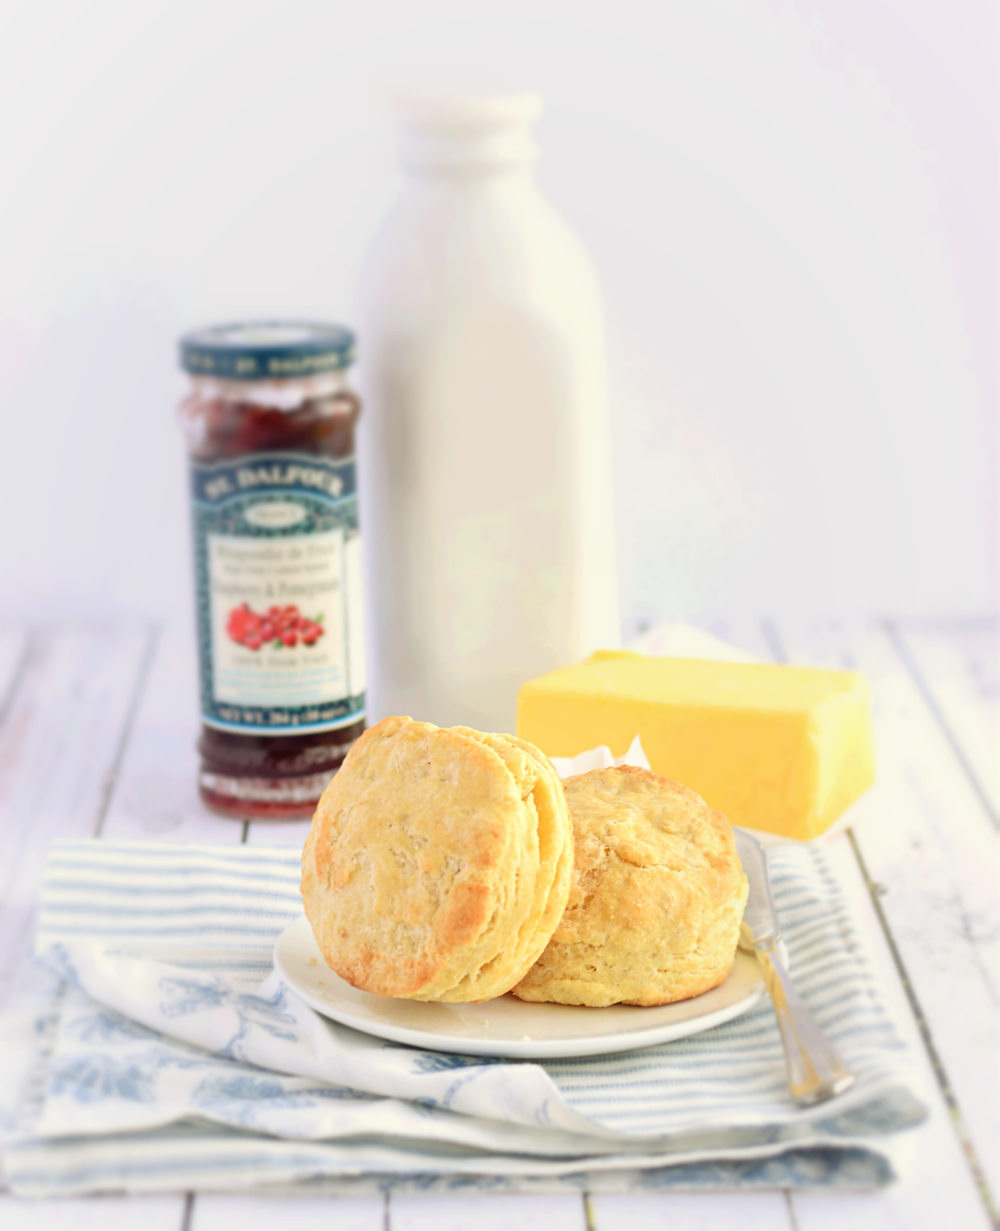 My Favorite Plain Scones